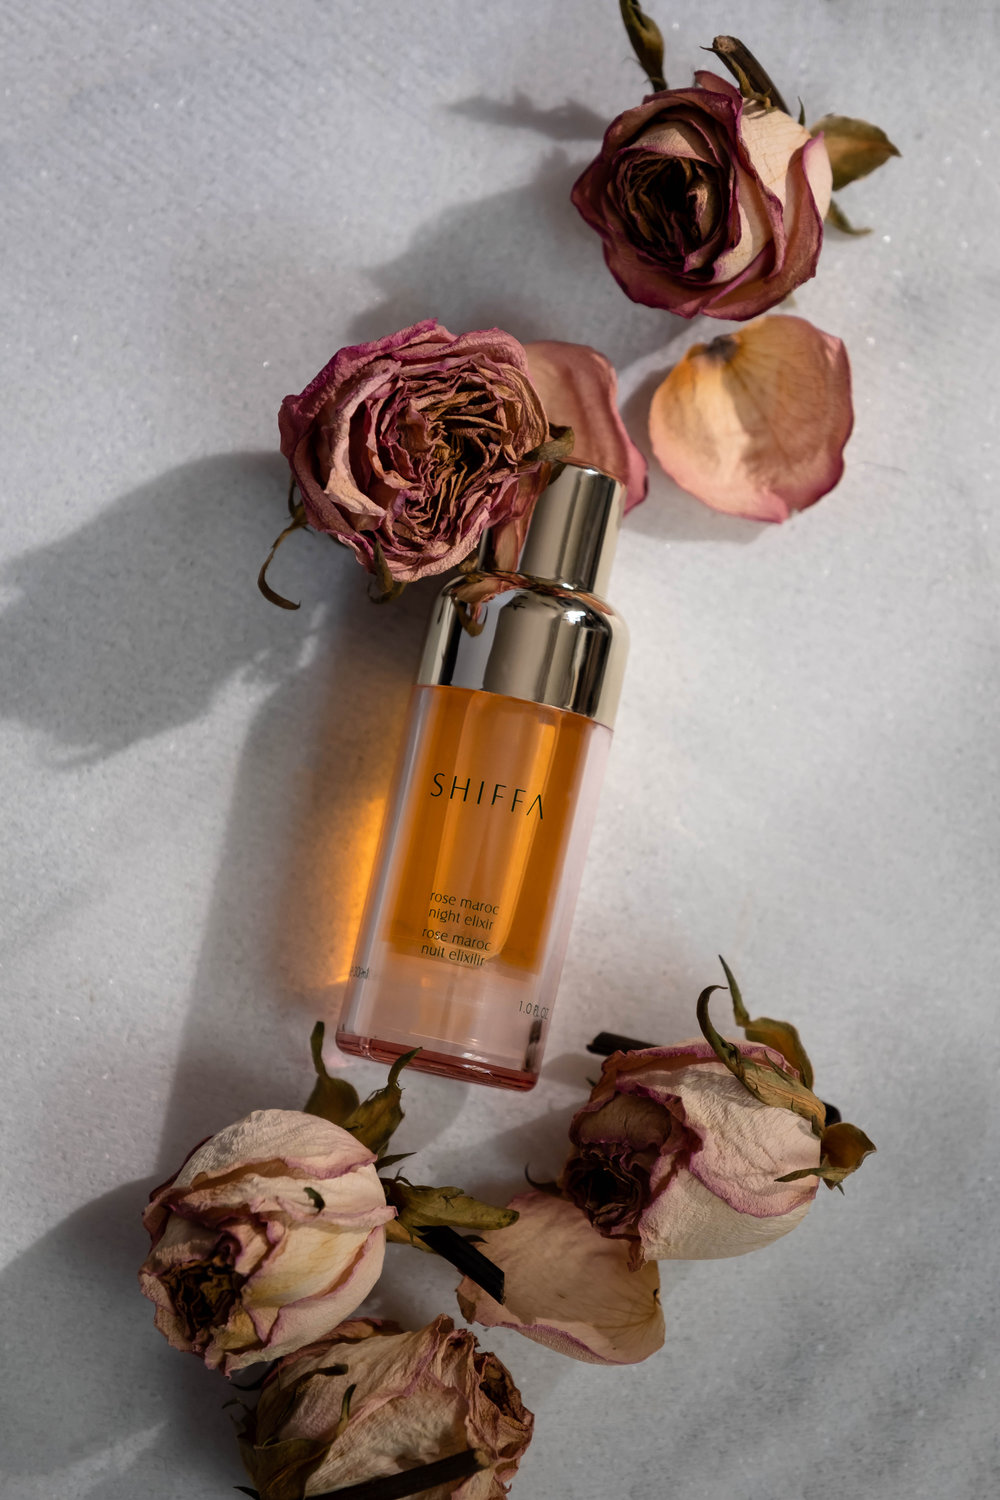 ROSE &IVY Journal A Lullabye for the Skin | Shiffa's Rose Maroc Night Elixir